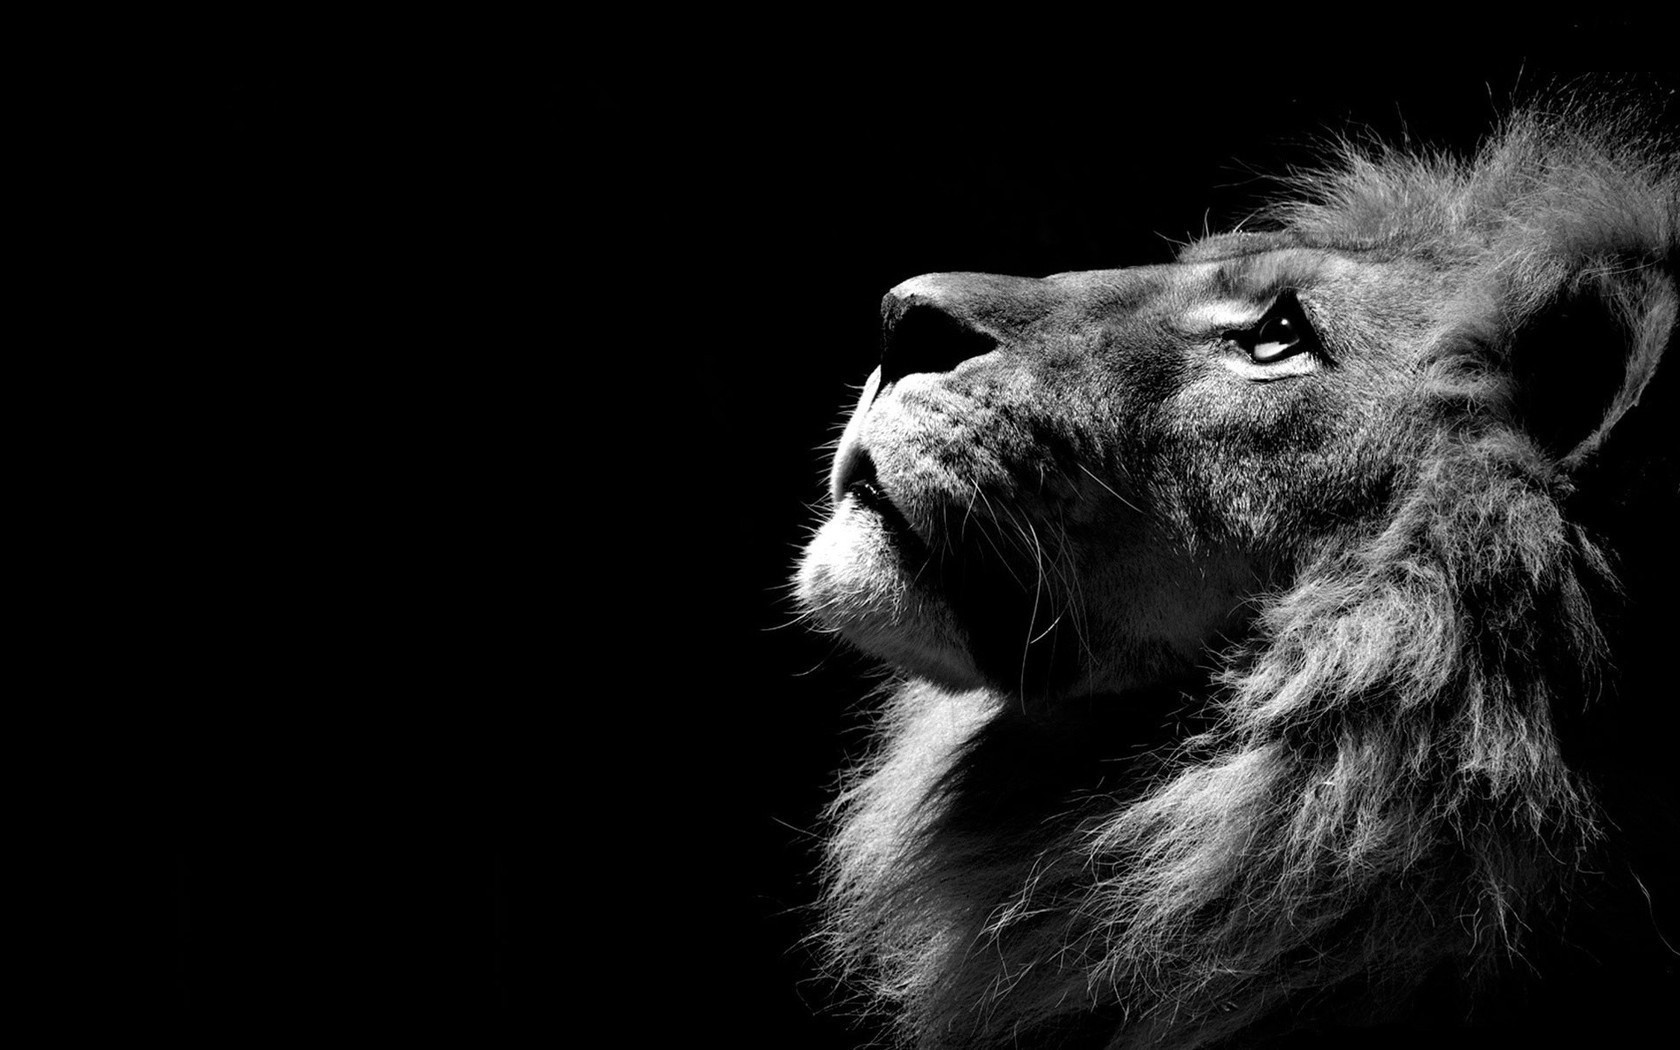 Lion In The Shadows HD Wallpaper Images New Desktop 1680x1050